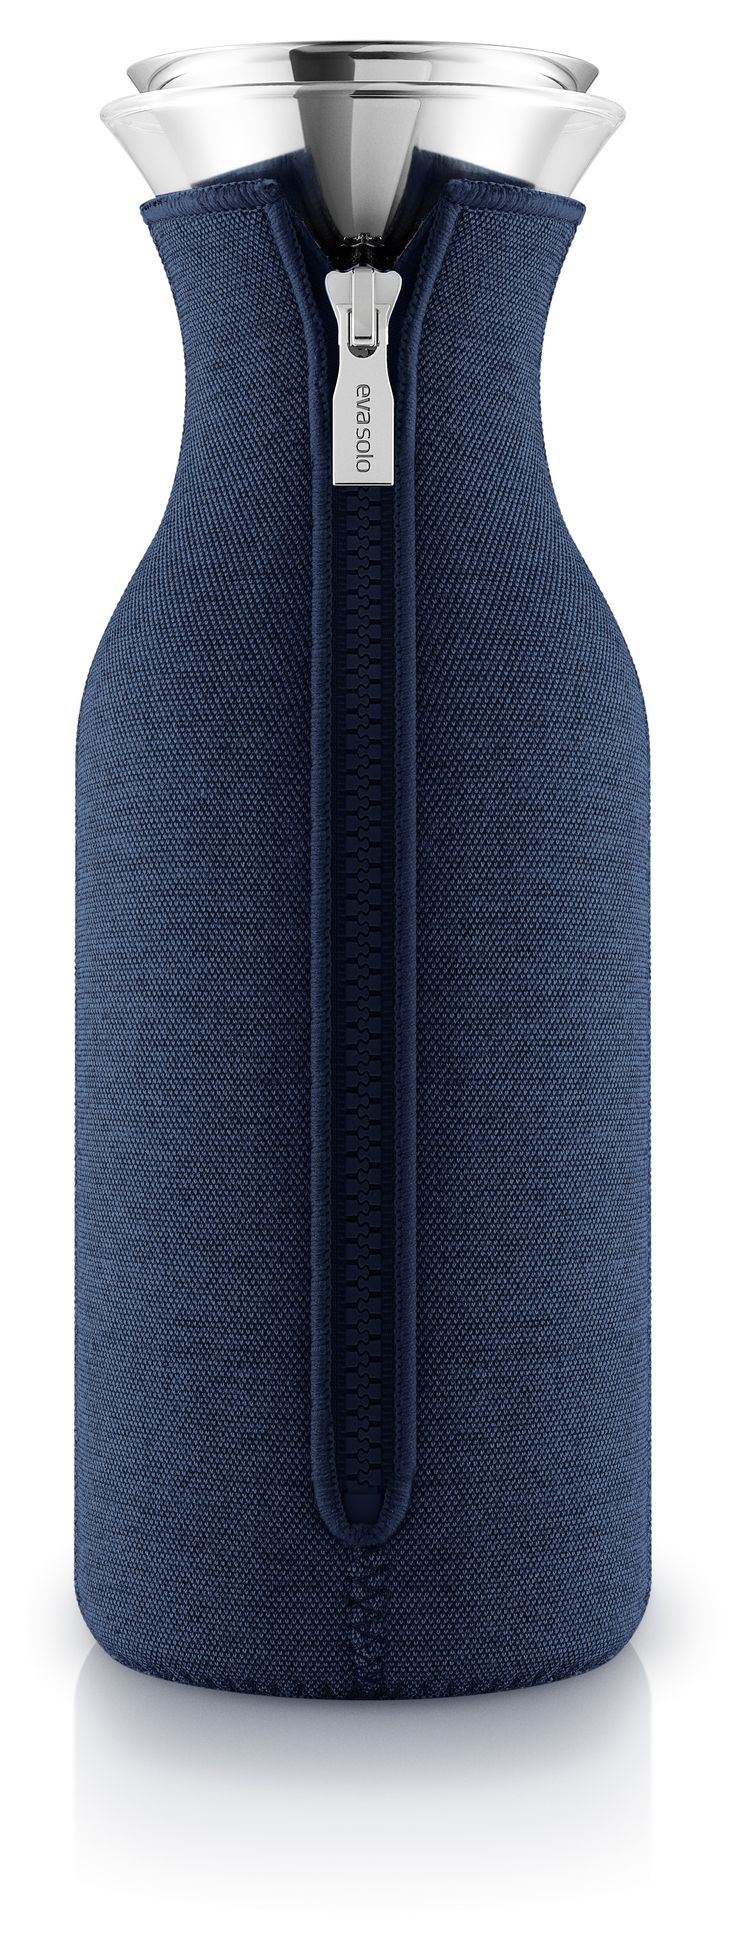 Navy blue fridge carafe by Eva Solo